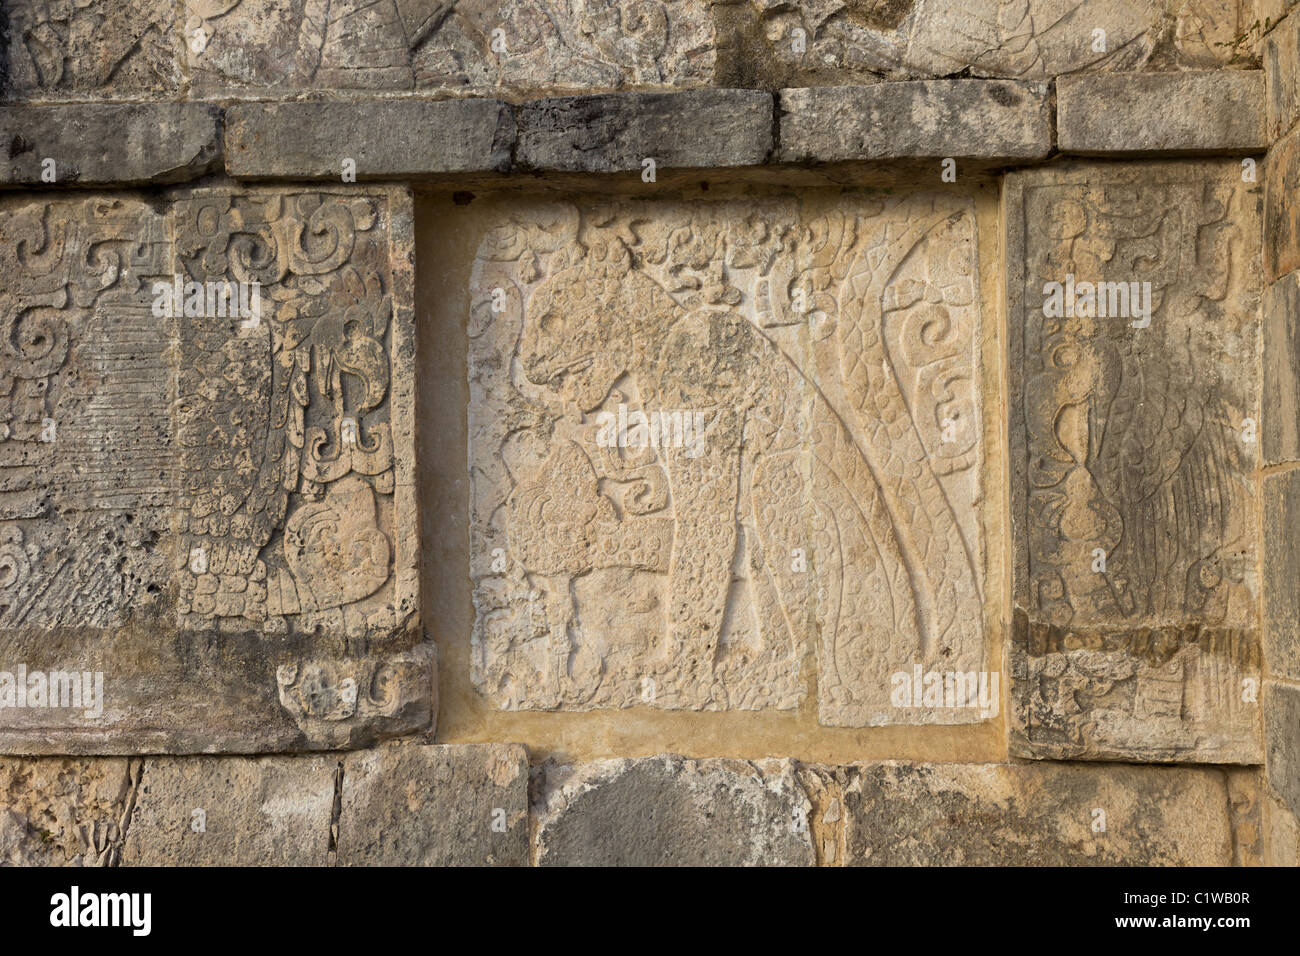 Relief carving depicting a jaguar eating a human heart on The Platform of Eagles and Jaguars in Chichen Itza, Yucatan, - Stock Image